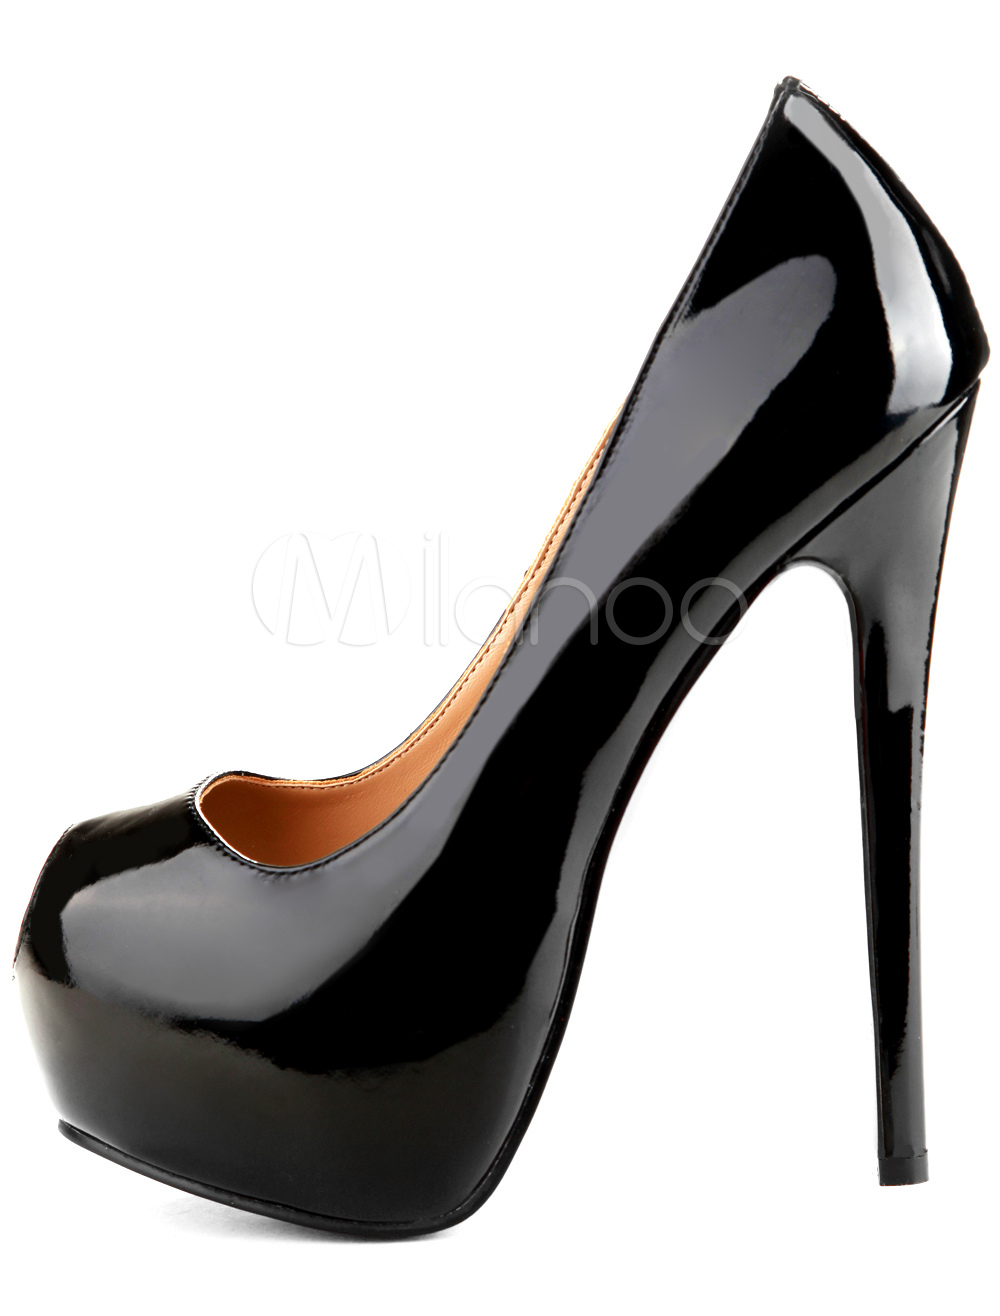 4f872f24367f5 Black High Heels Women Dress Shoes Peep Toe Platform Slip On Pumps